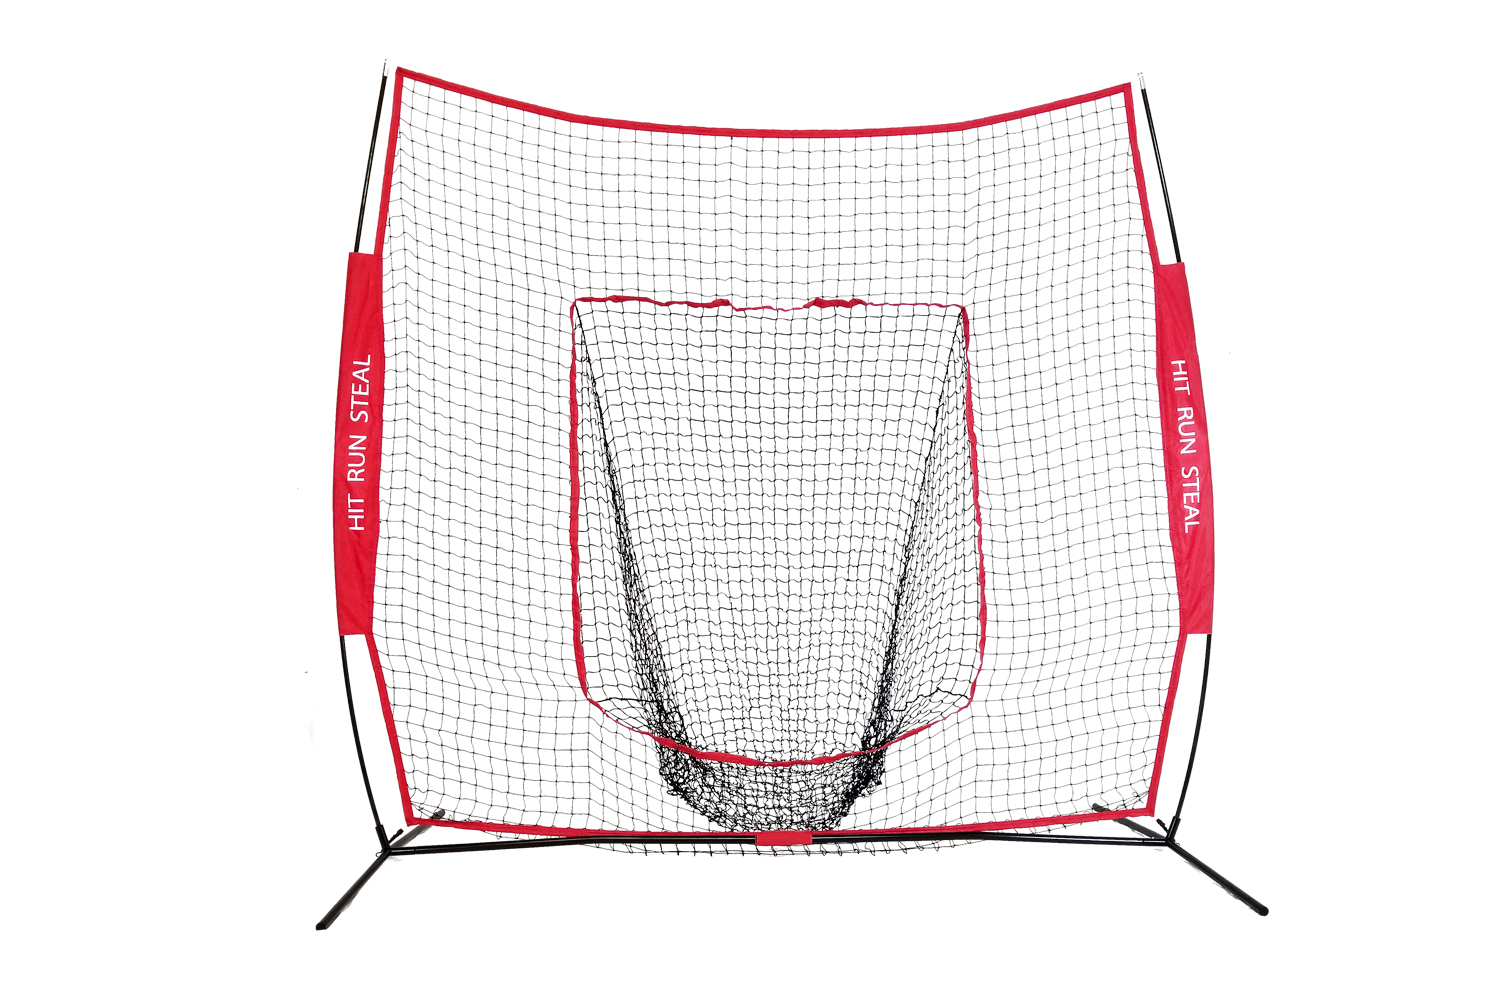 Sport Nets Baseball Softball Hitting and practice net- 7x7ft baseball pitching net, Large Mouth Net with Bow... by Sport Nets